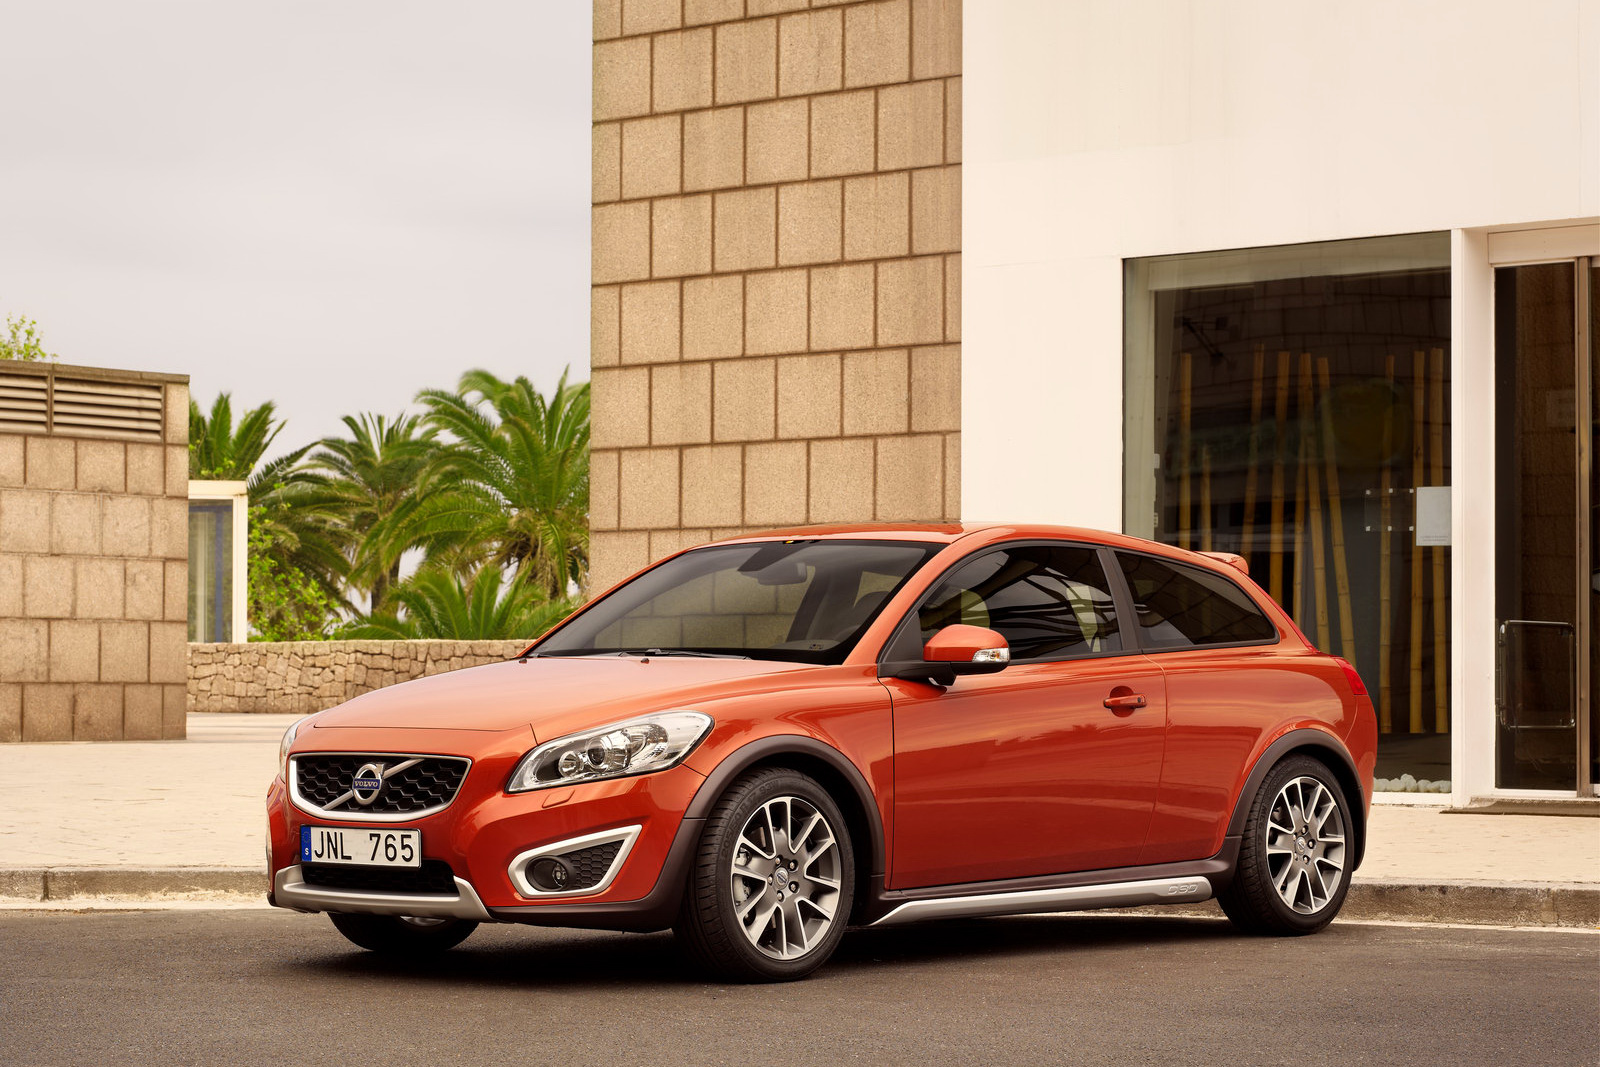 Auto Cars 2011 2012 Worldwide Recall For 2010 2011my Volvo C30 S40